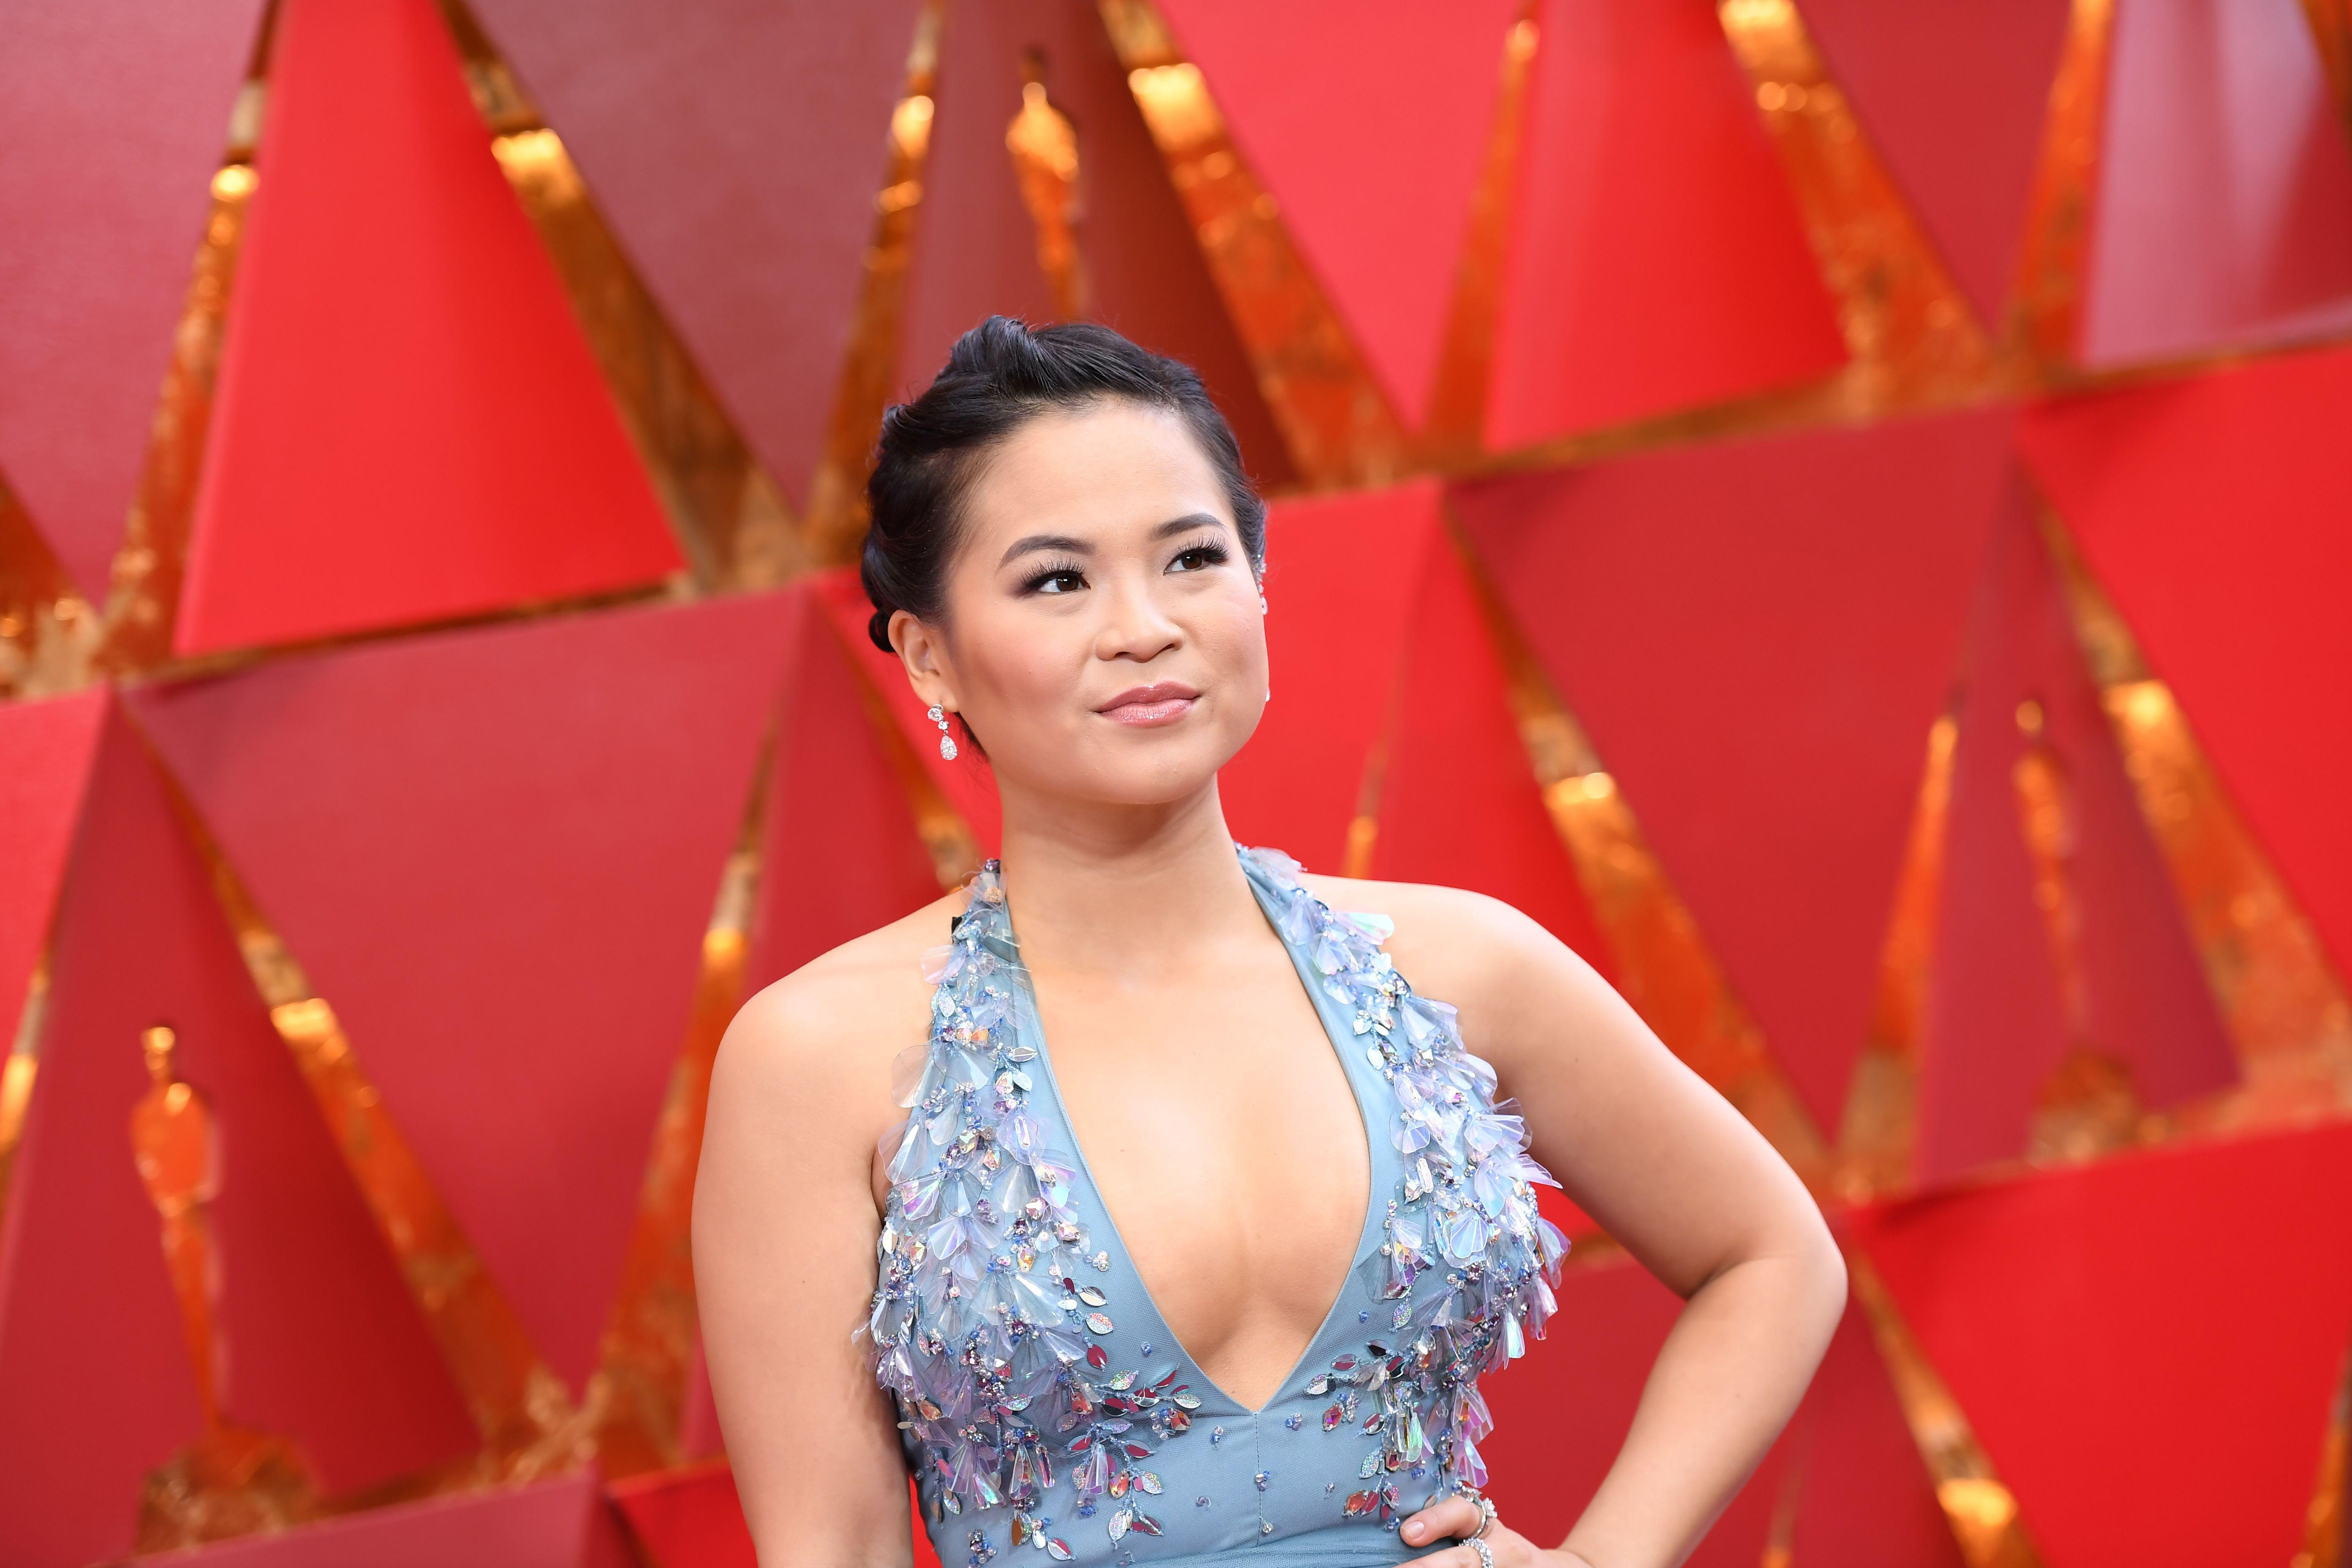 Kelly Marie Tran wears a blue bejeweled dress on the red carpet.